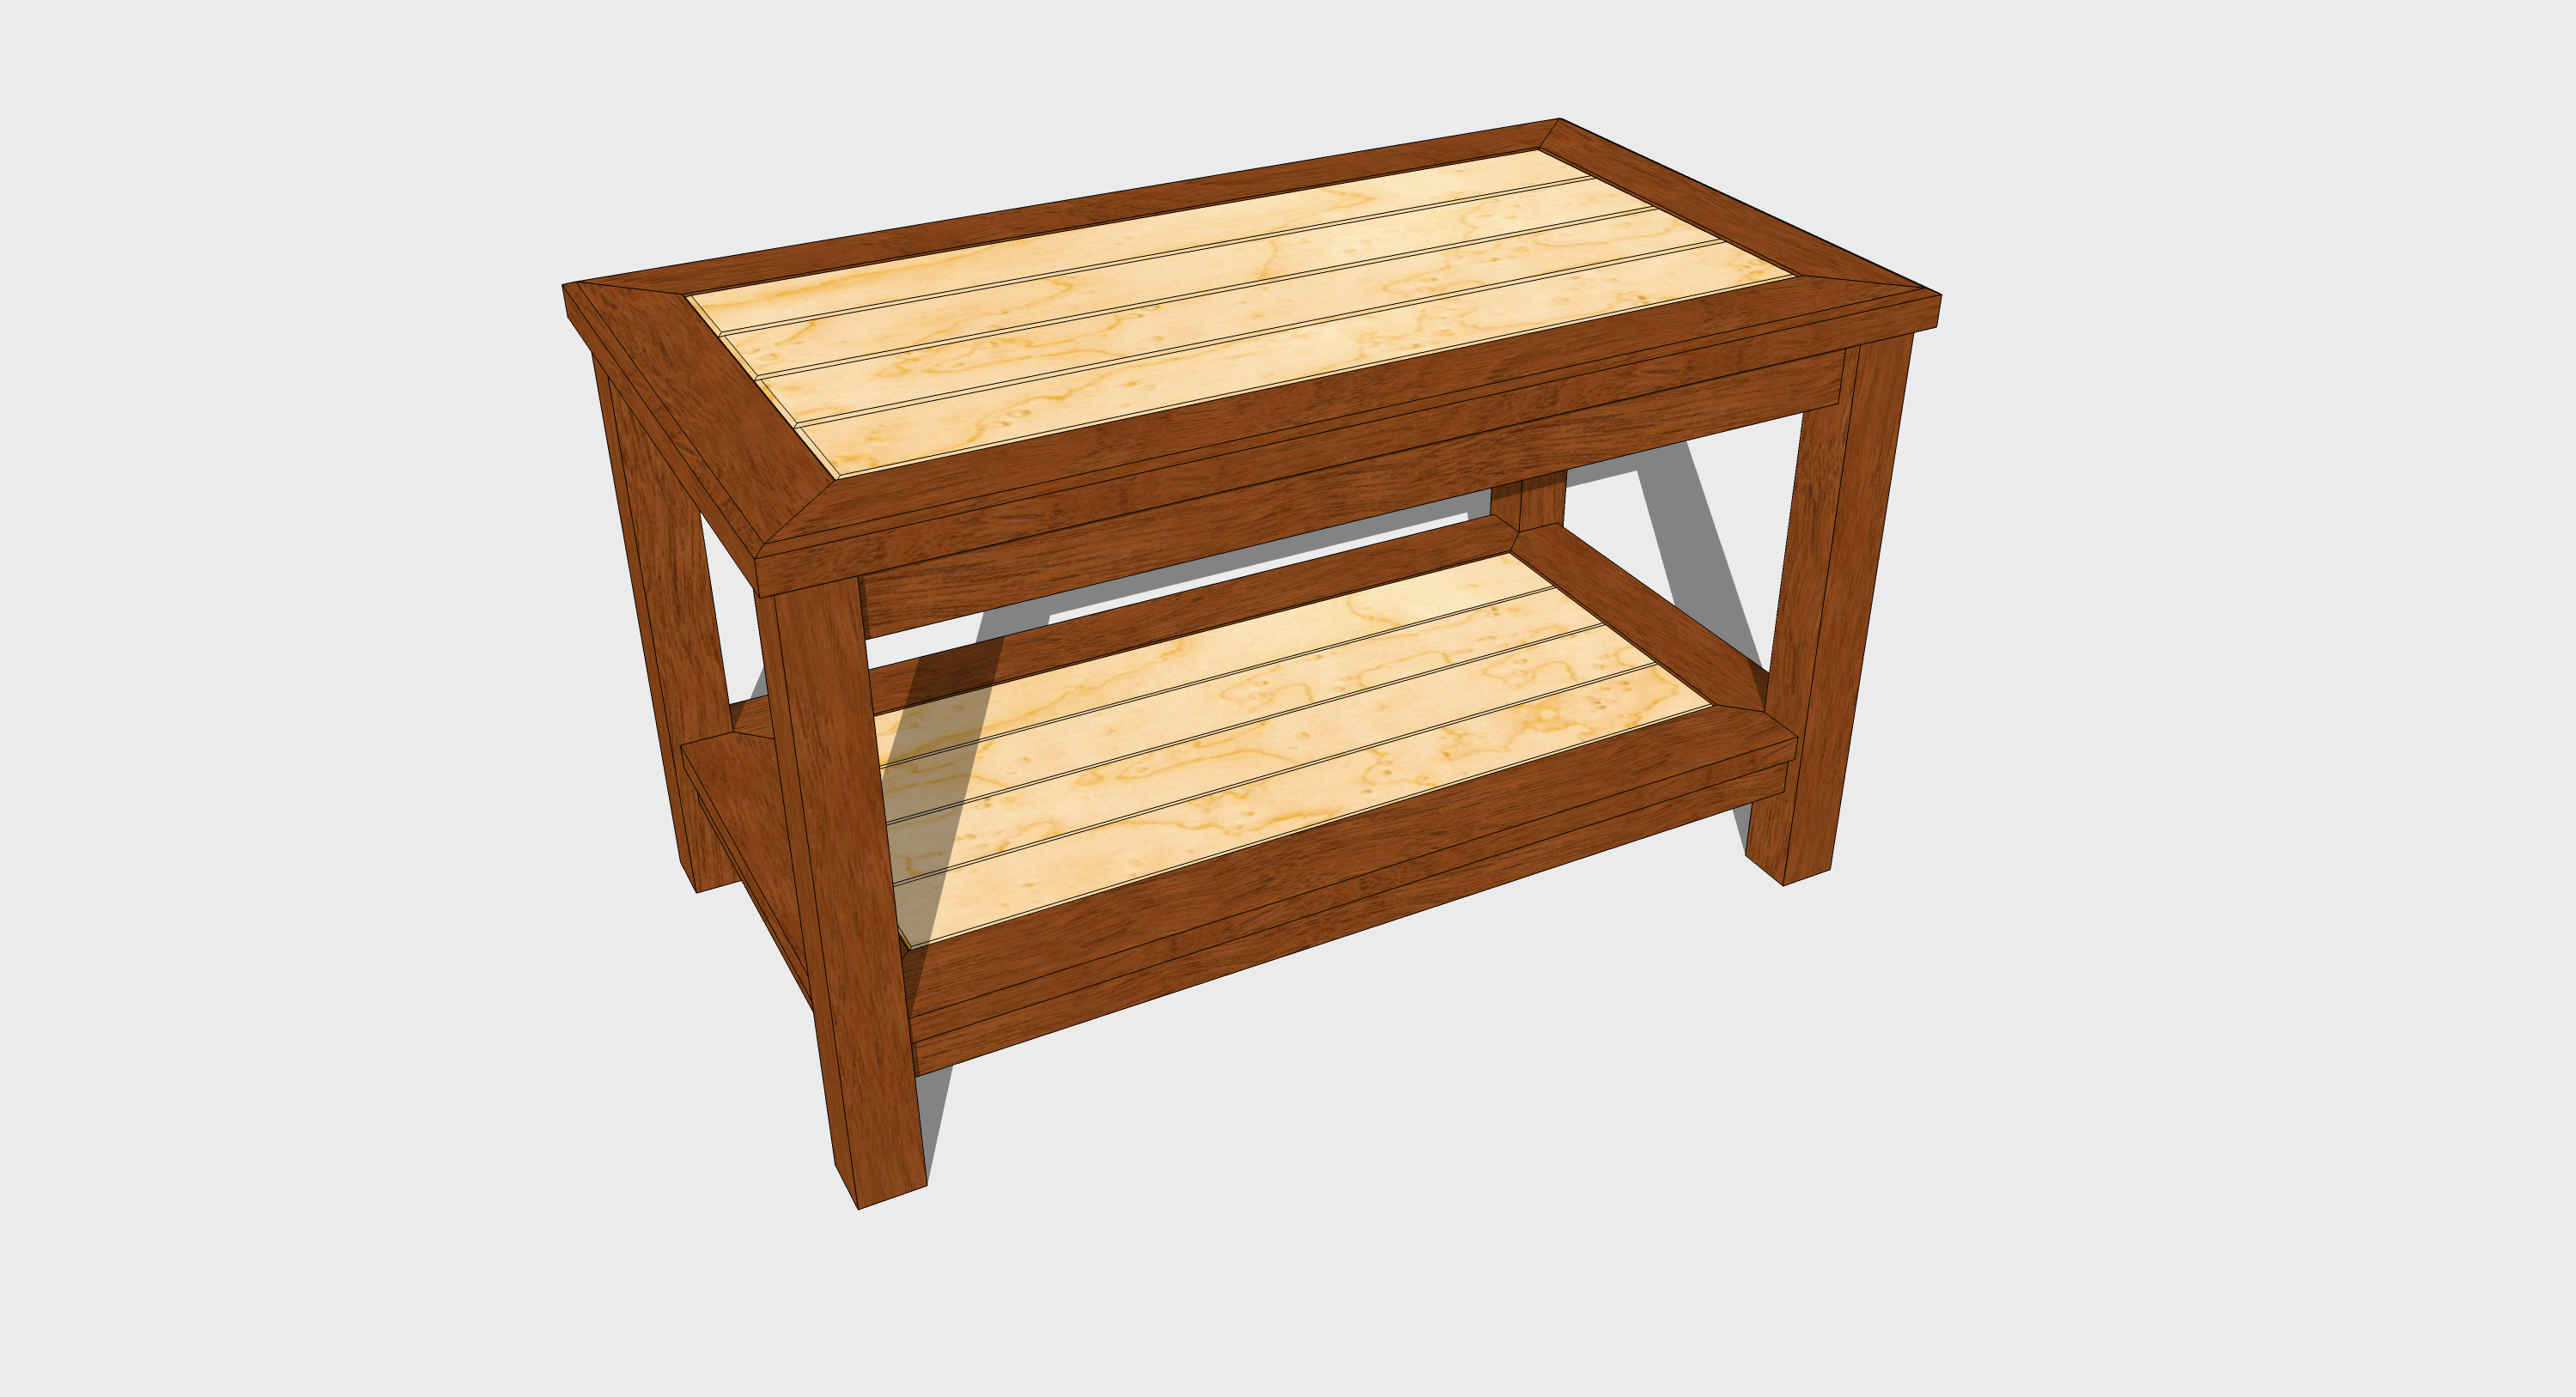 Wooden Coffee Table Plans Free Photo 9